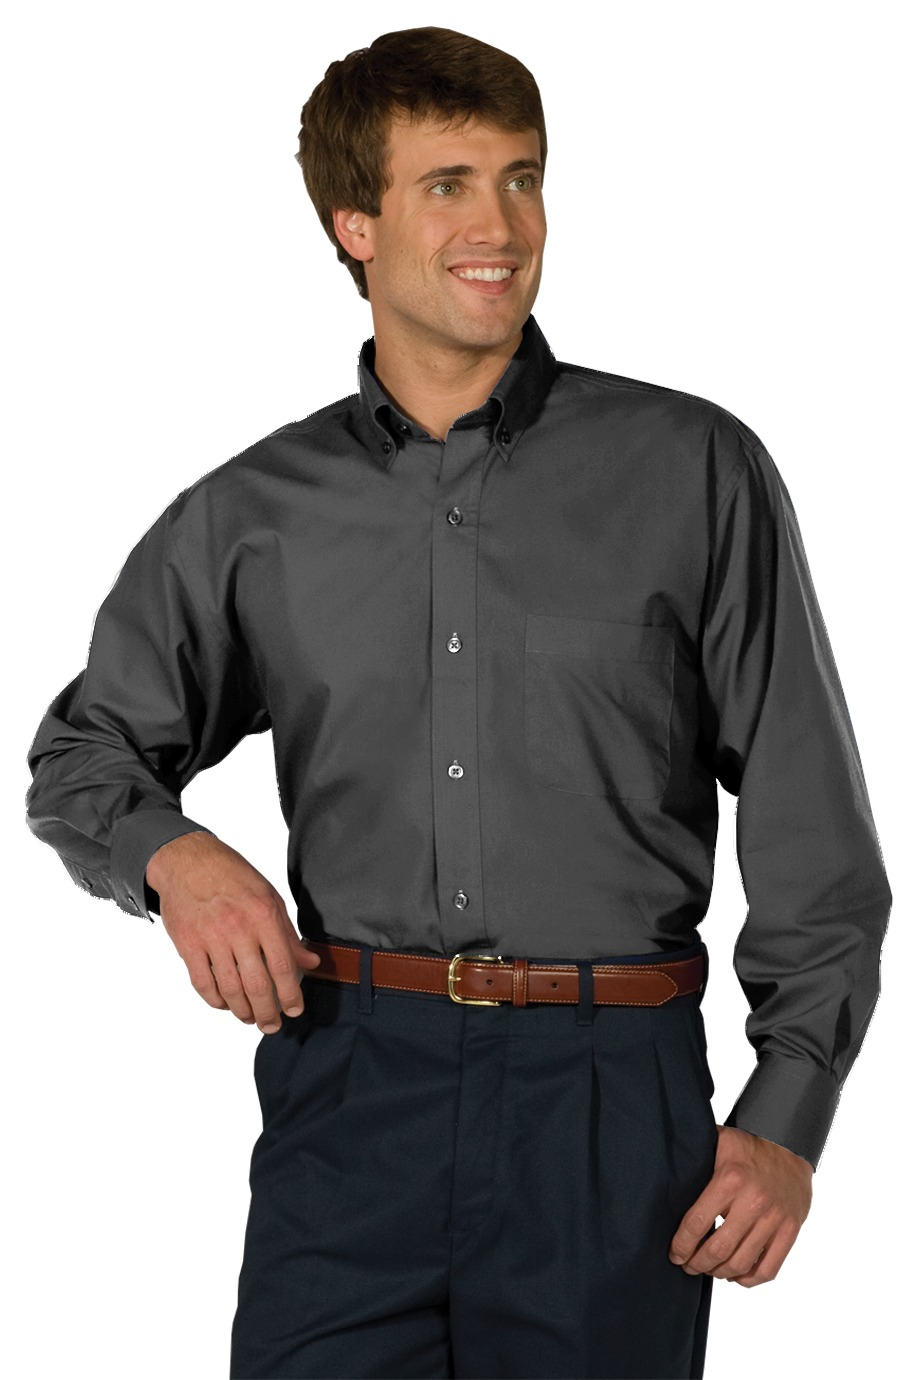 MHE1295-FKEY- Mens  Button Up Poplin Long sleeve. Sizes Small-6XL  | LARGE TALL - 6X TALL